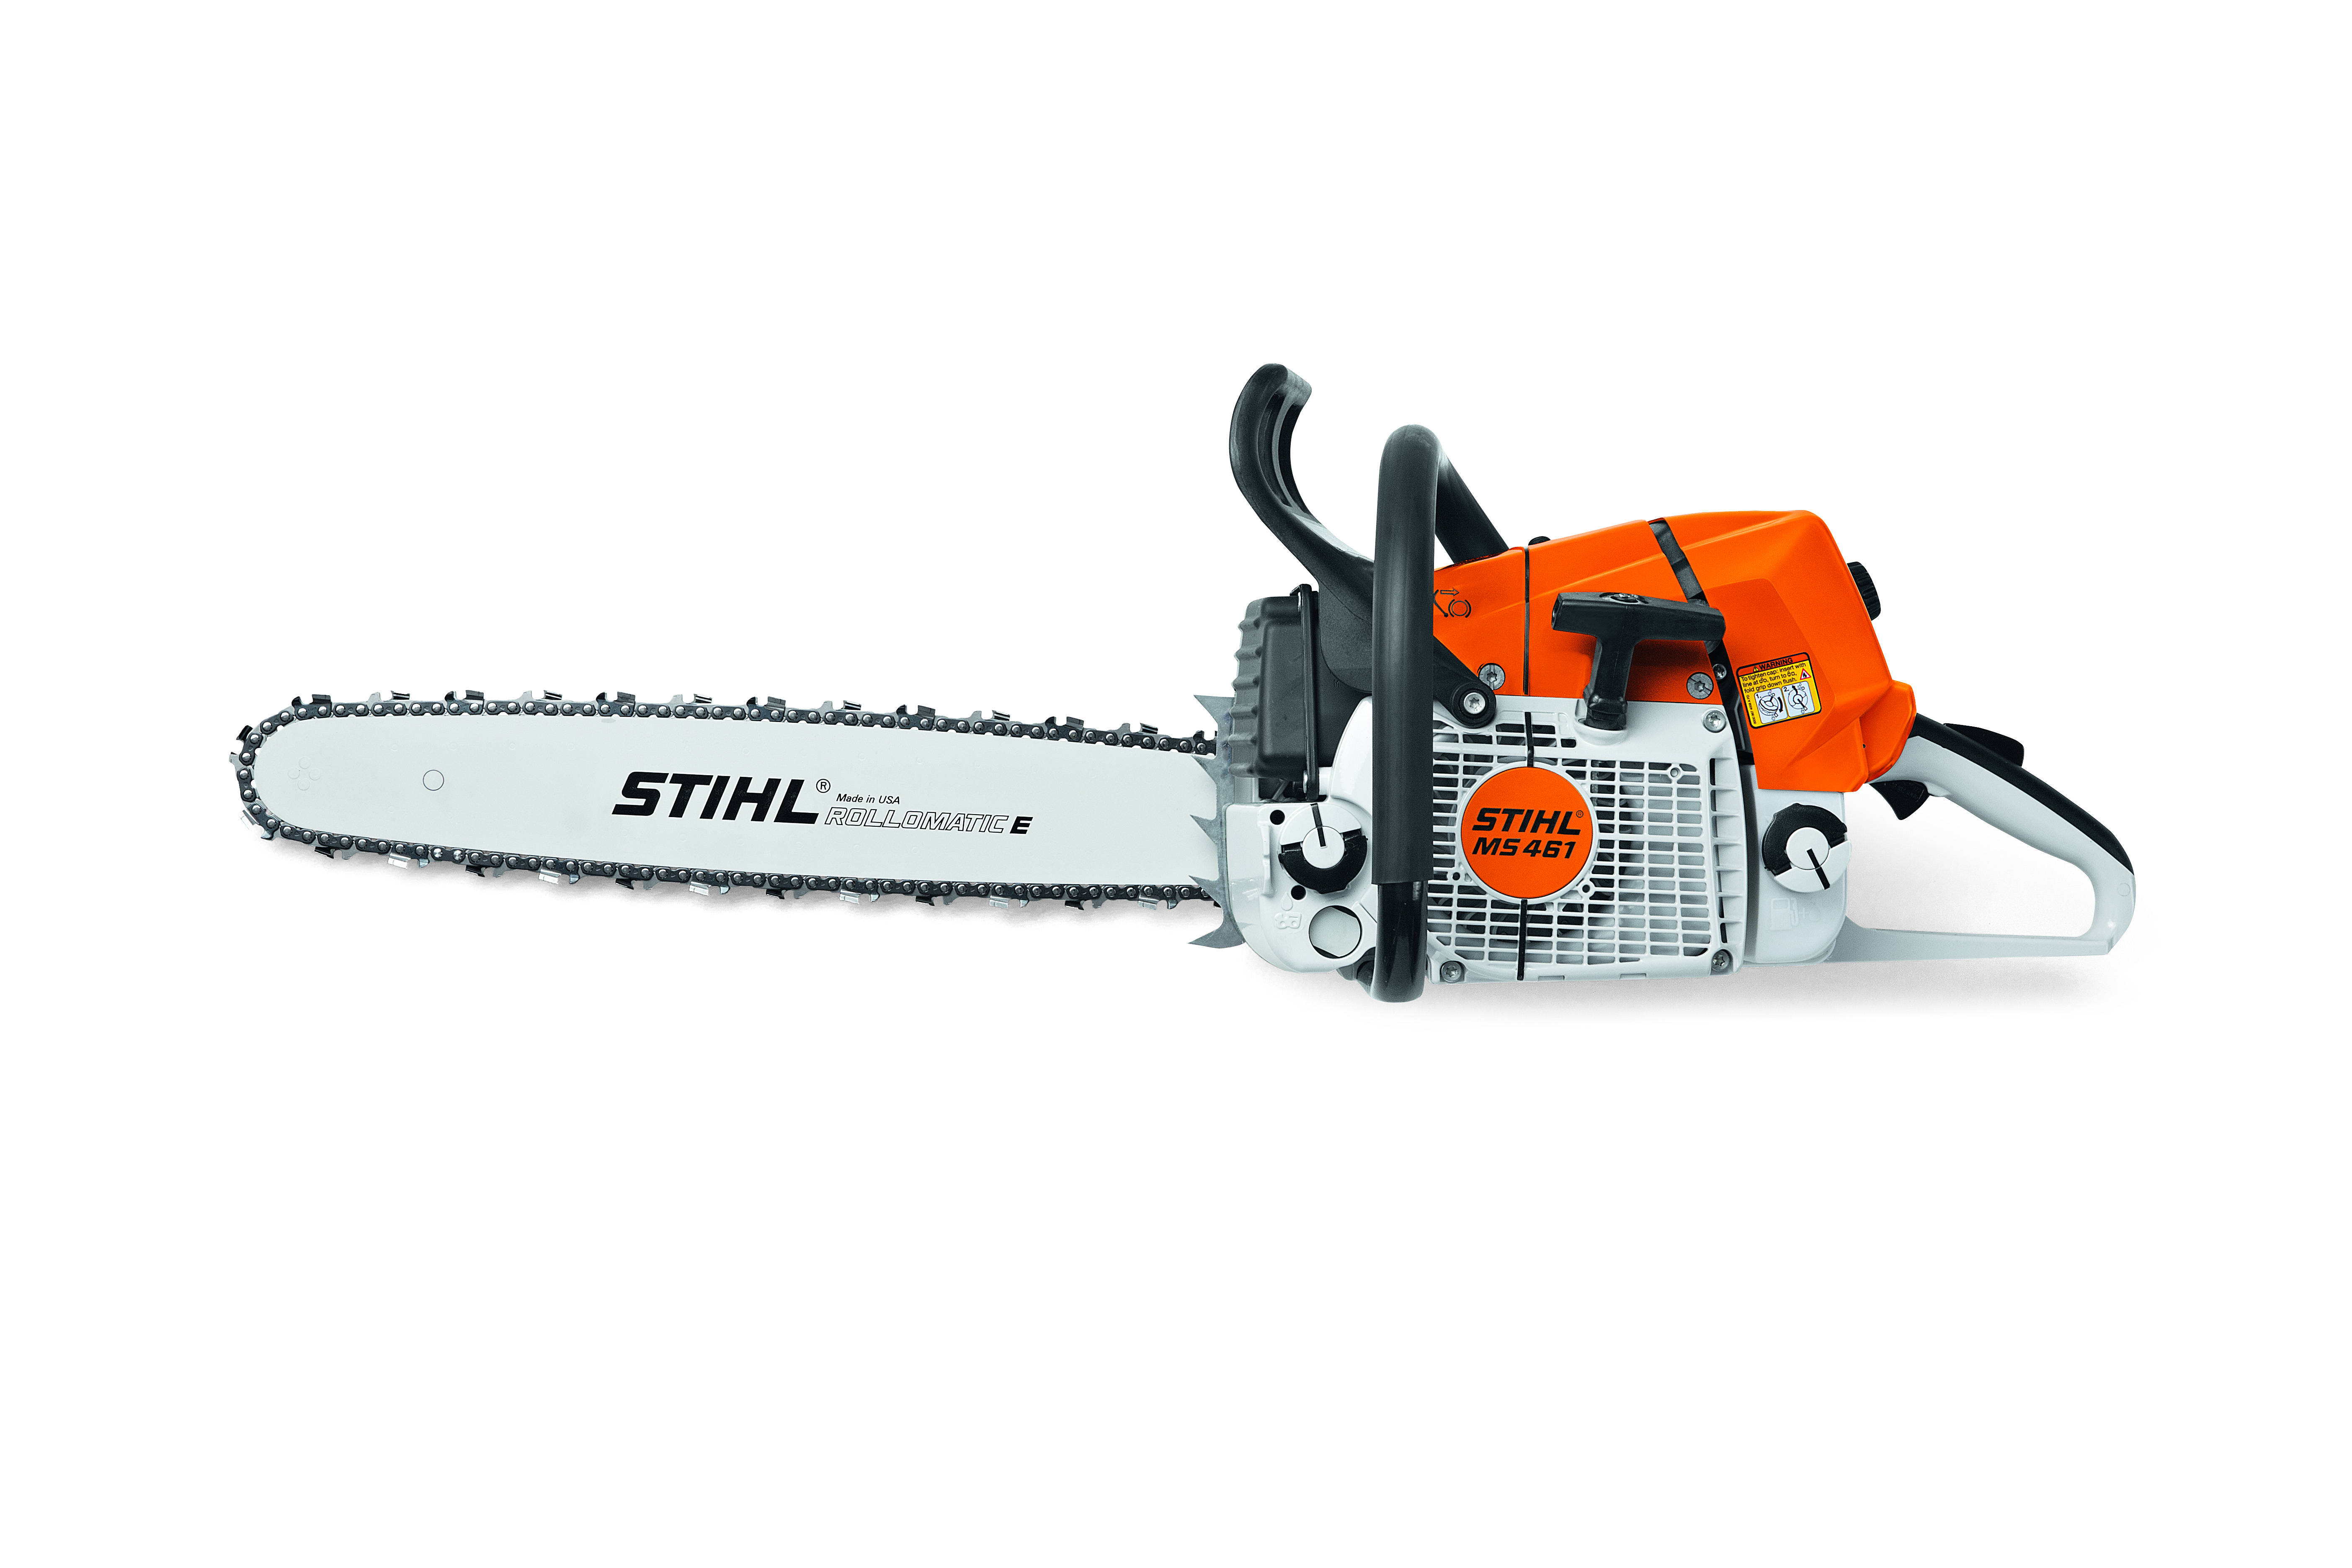 Ms 461 r chainsaw 28 greentooth Gallery